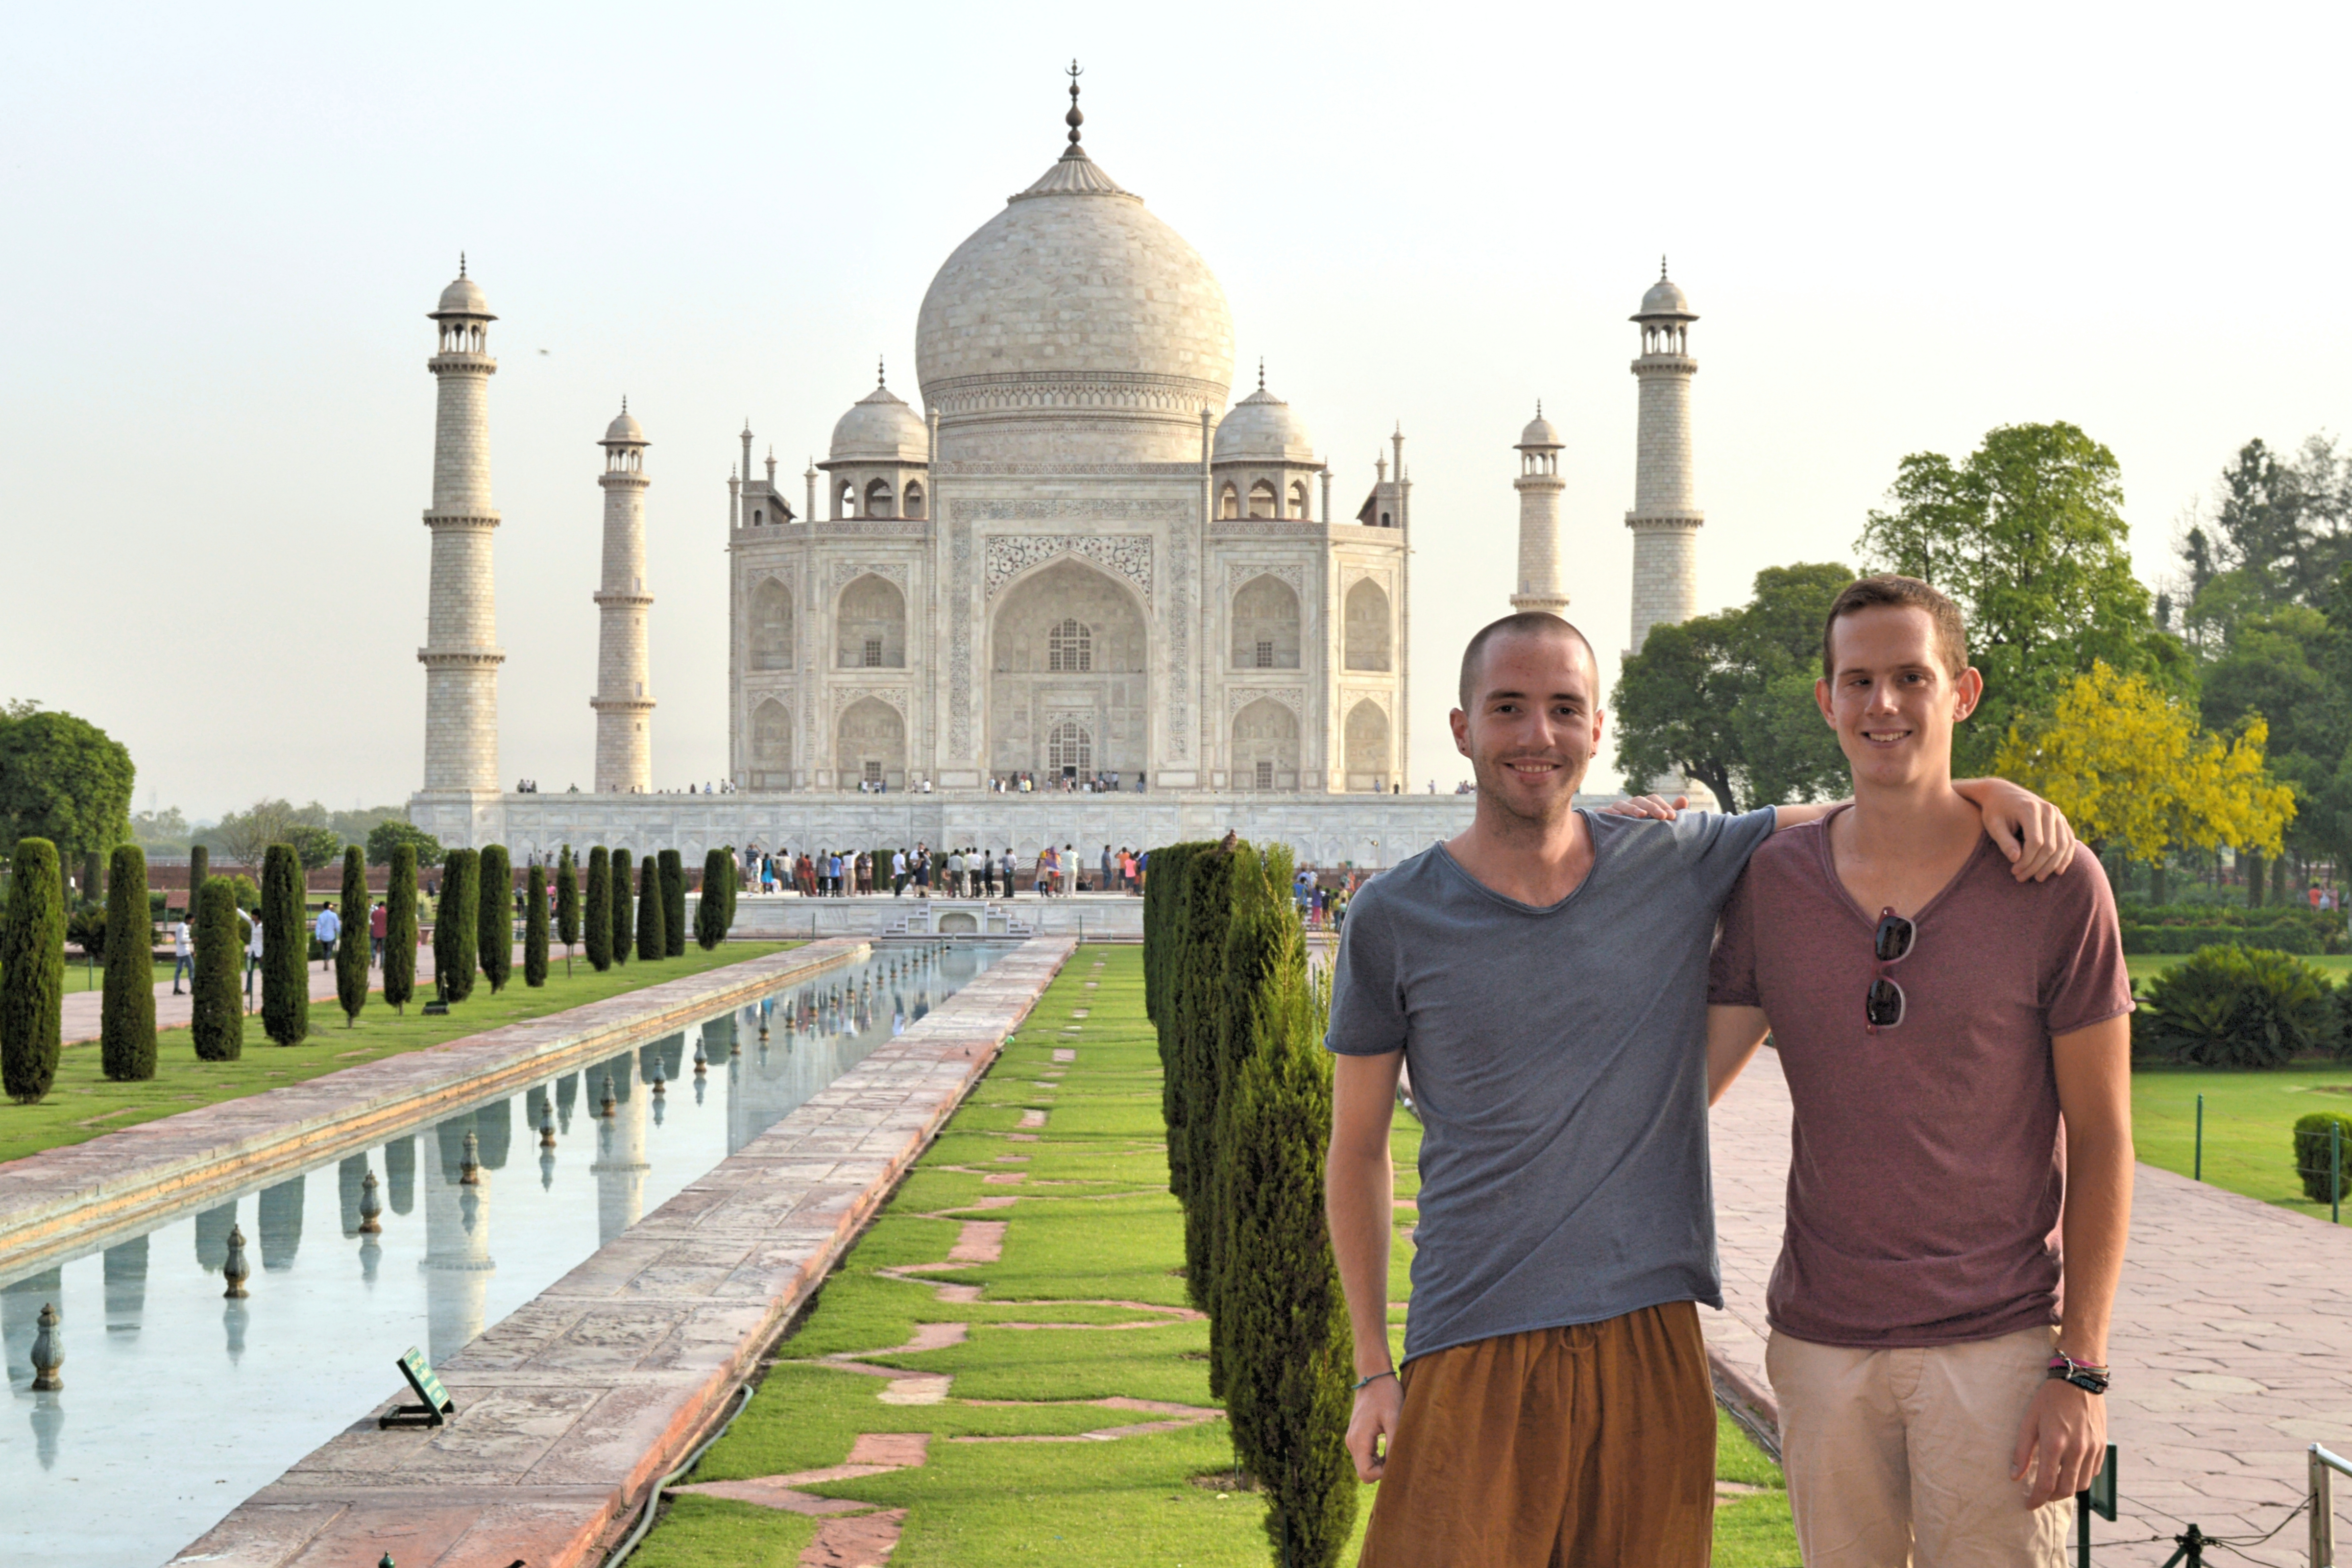 Us in front of the Taj Mahal